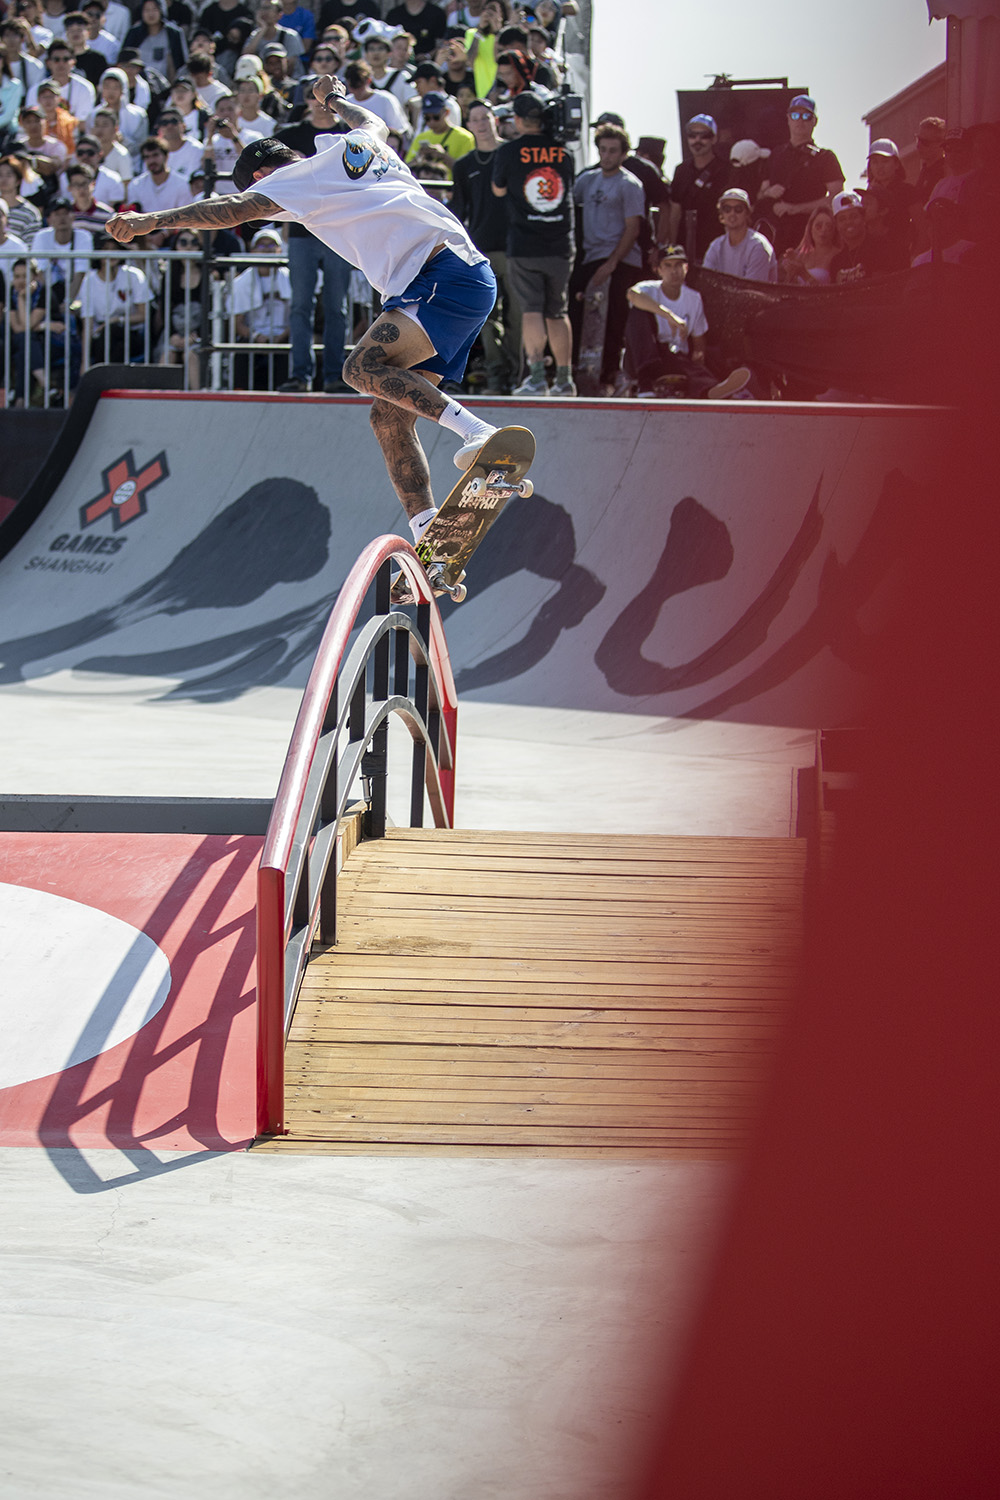 Nyjah Huston takes Gold in Skateboard Street | Salad Days